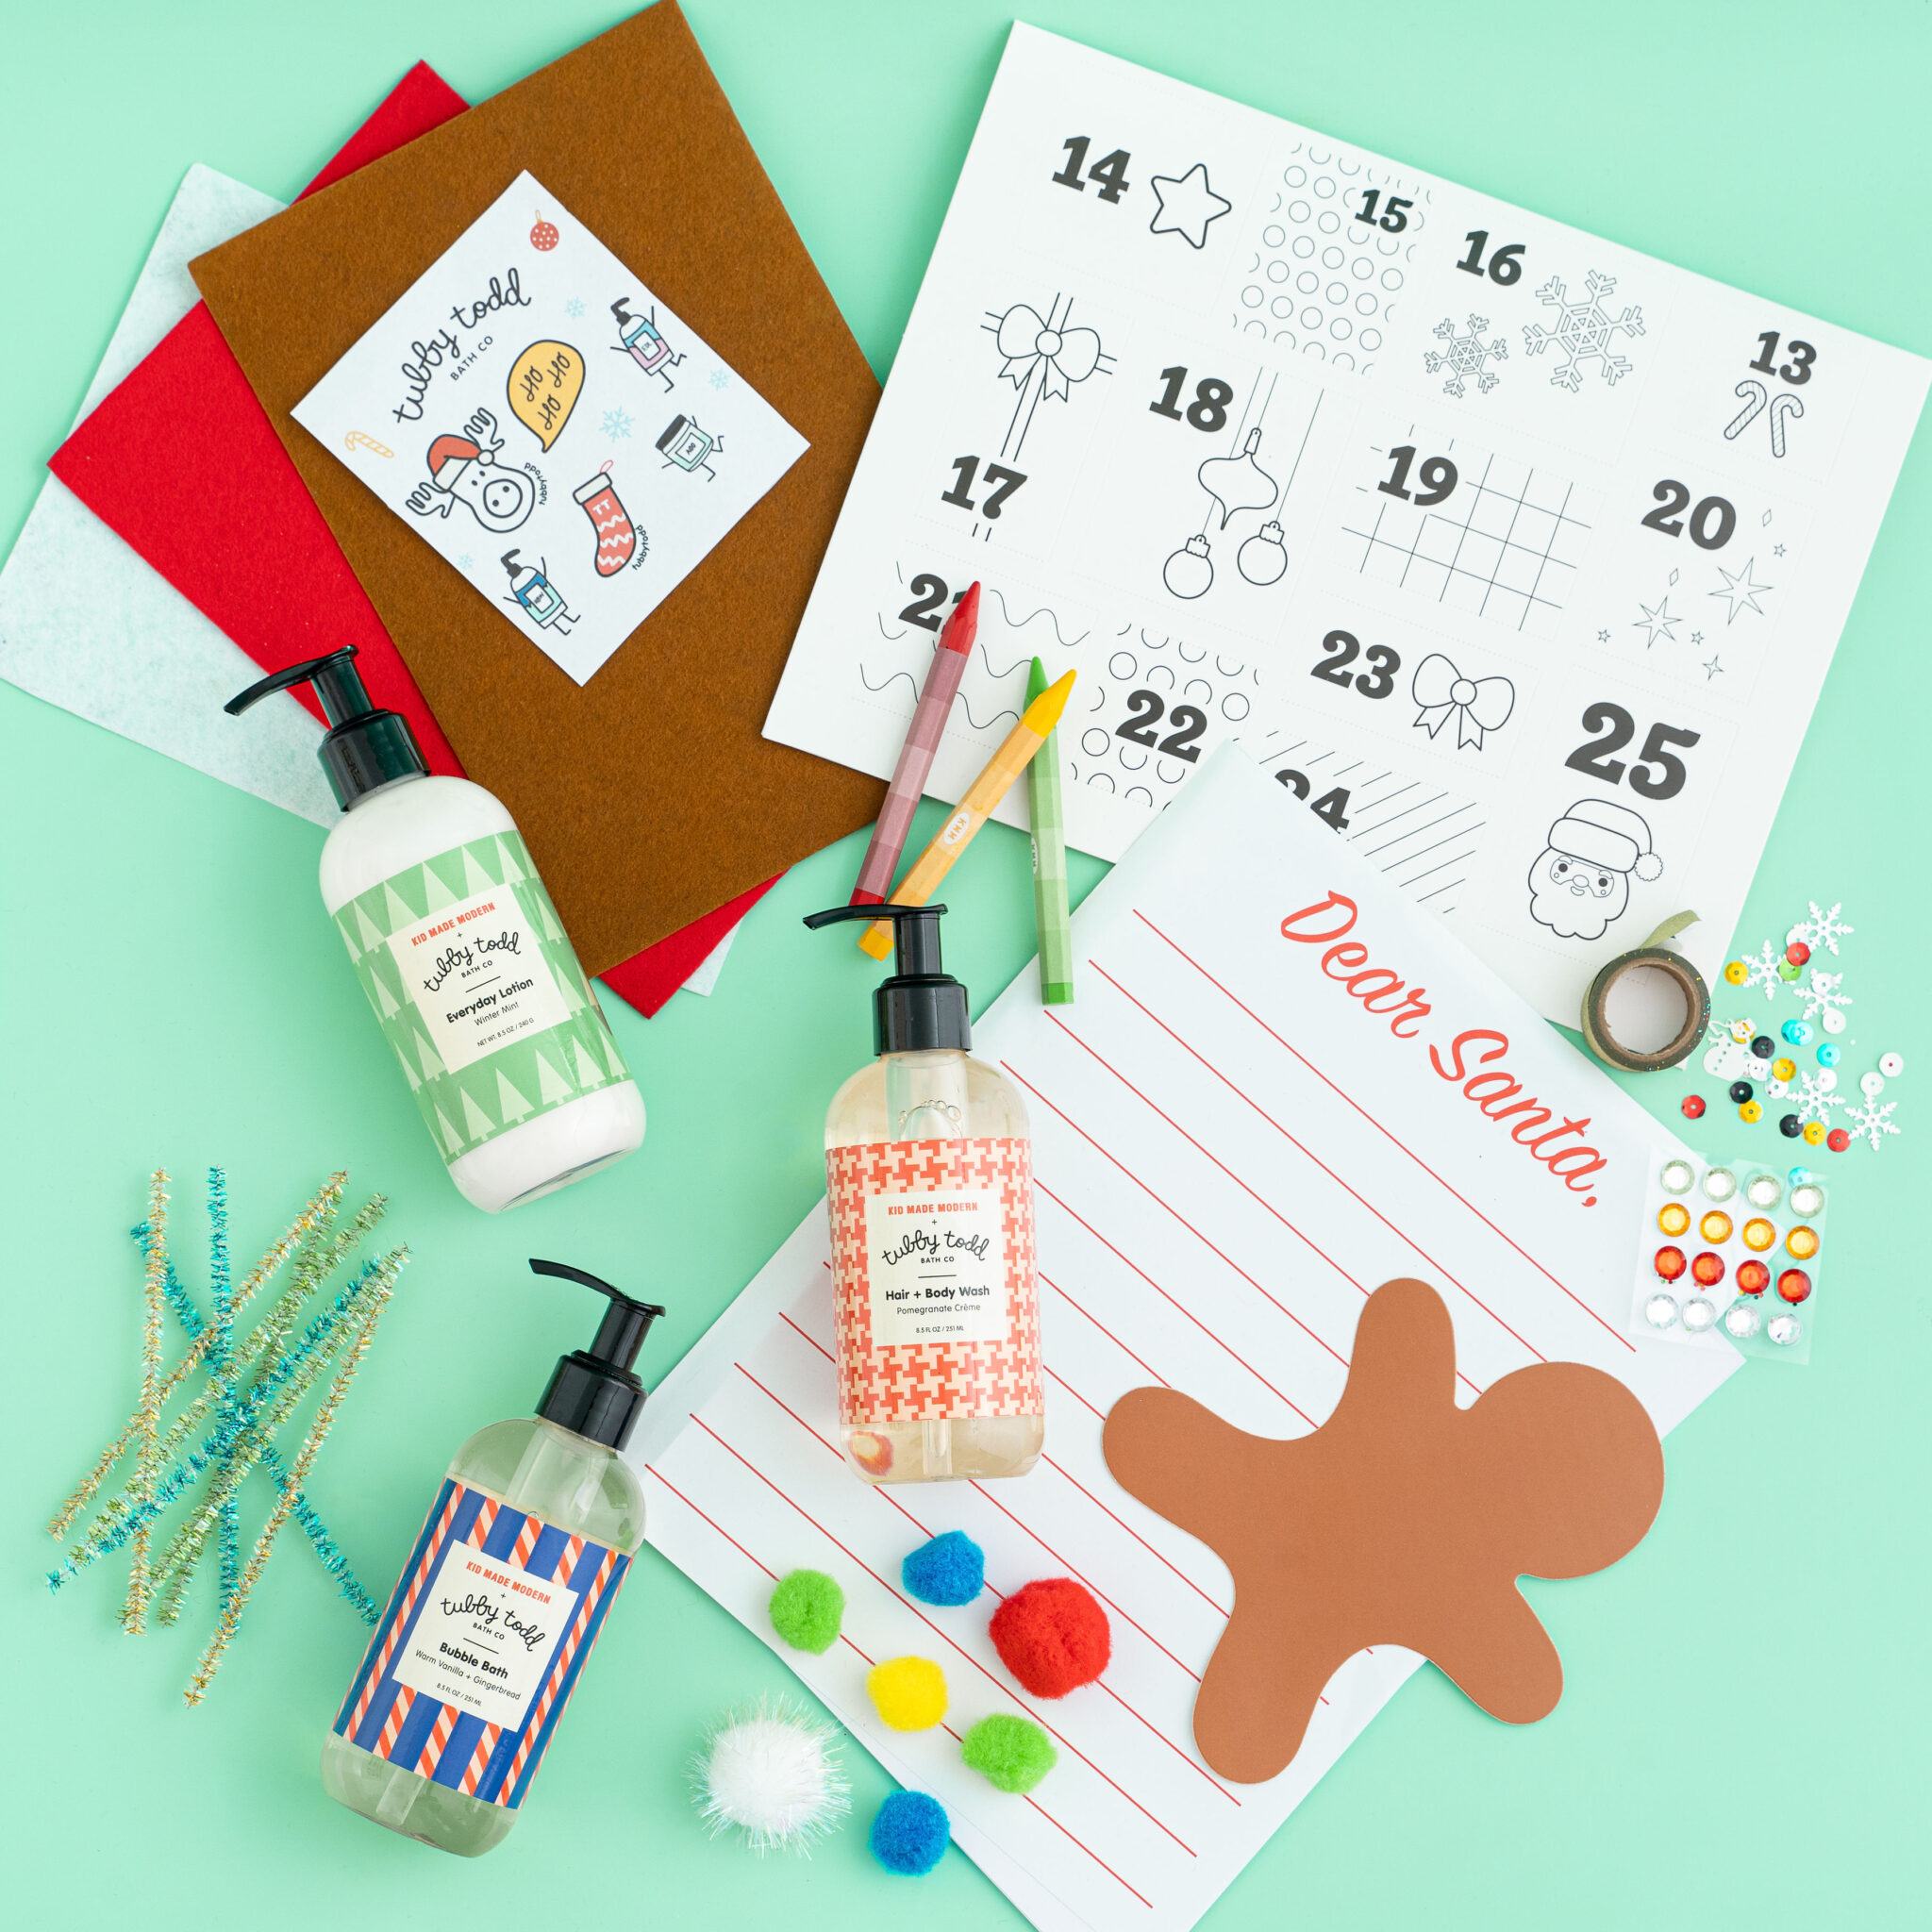 Tubby Advent Gift Set including Kid Made Modern DIY Advent Calendar and Seasonal Tubby Todd scents